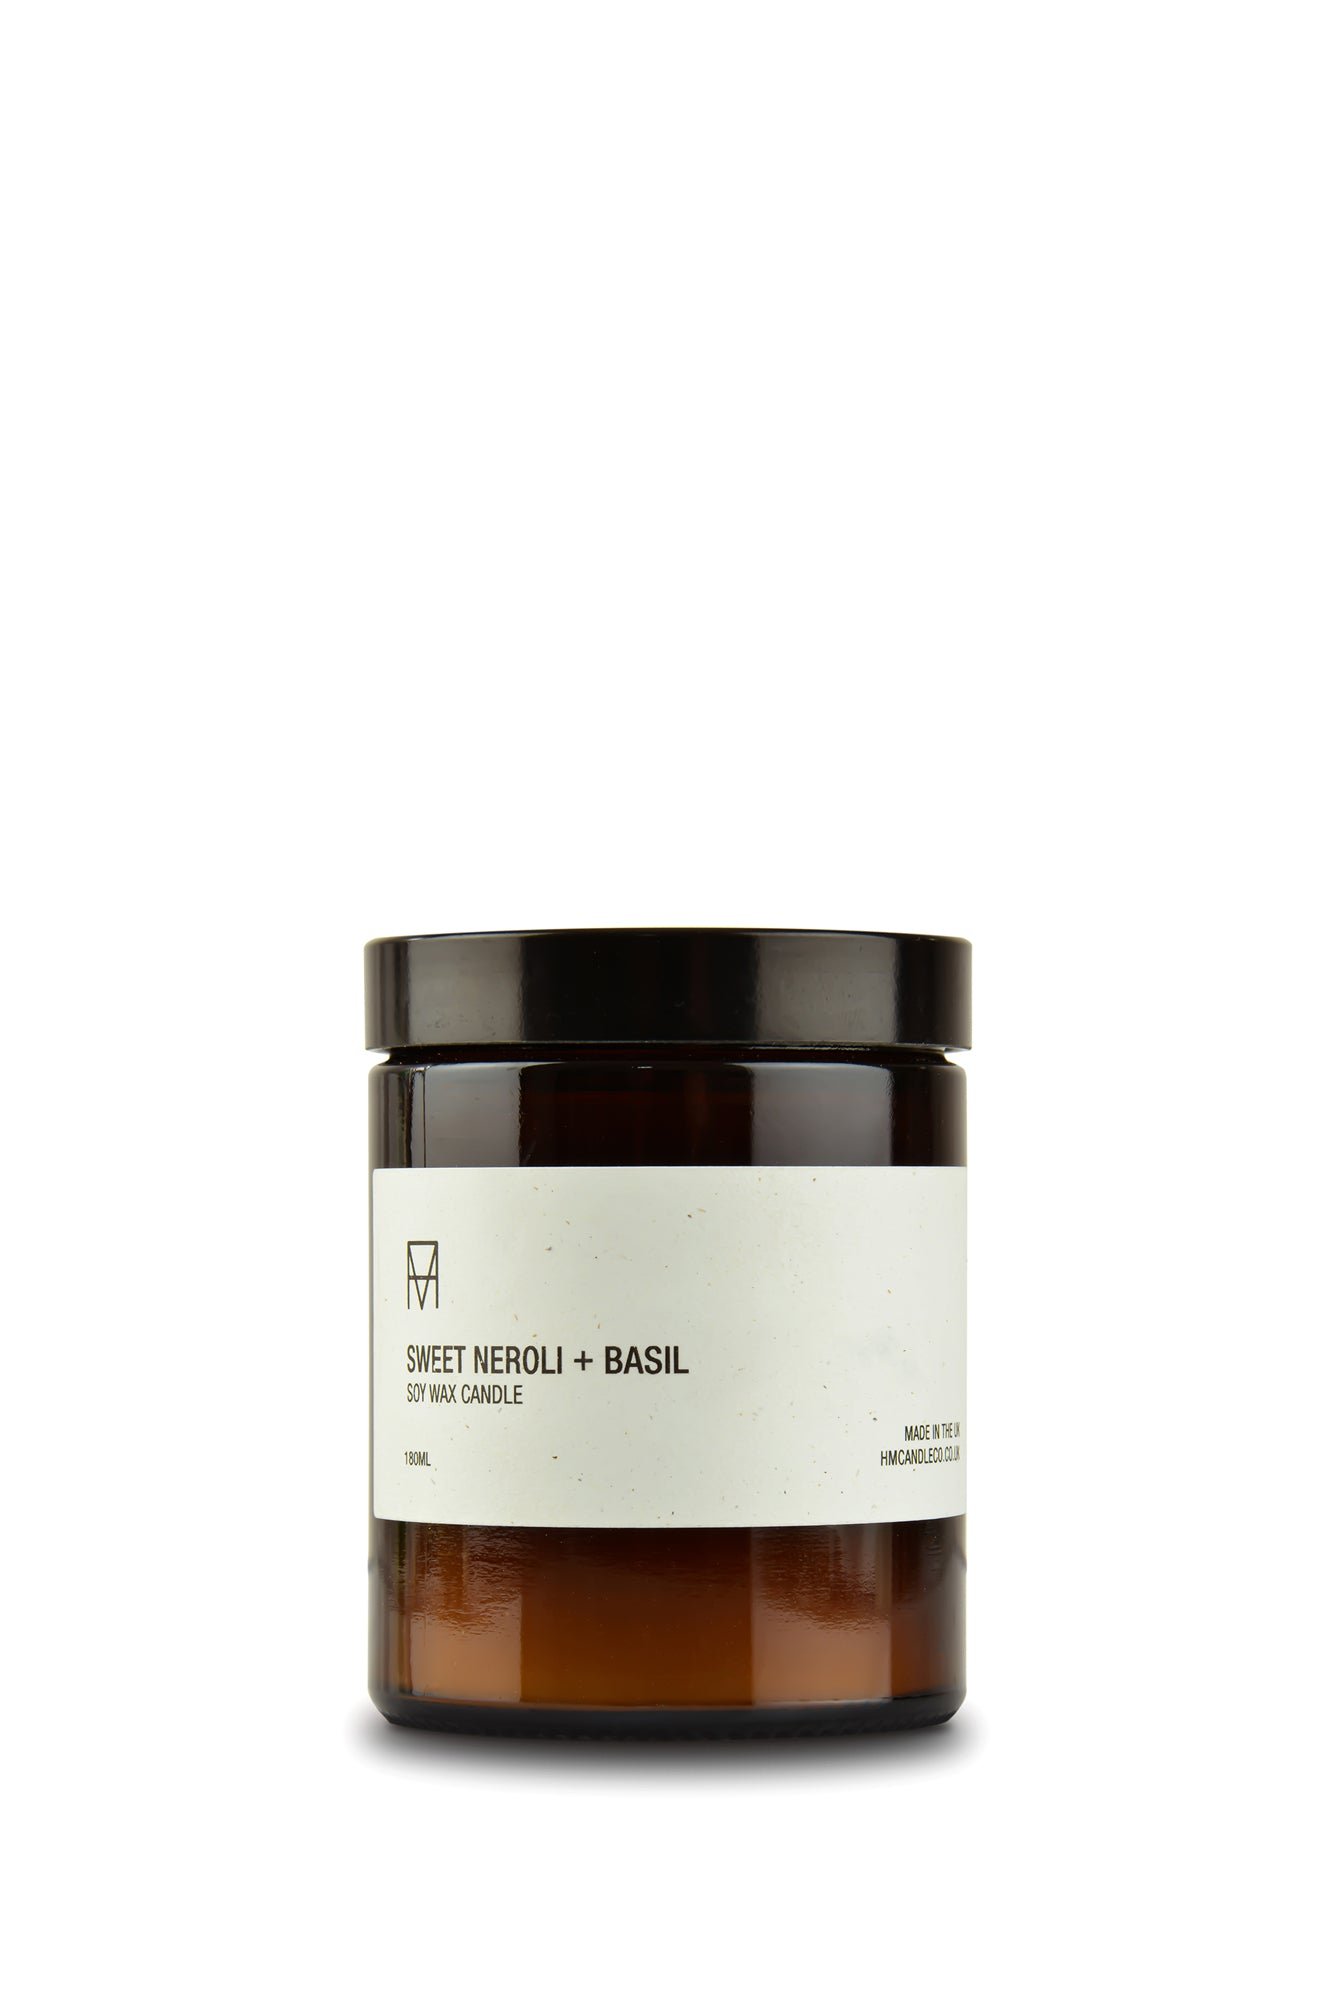 Sweet Neroli + Basil Soy Wax Candle